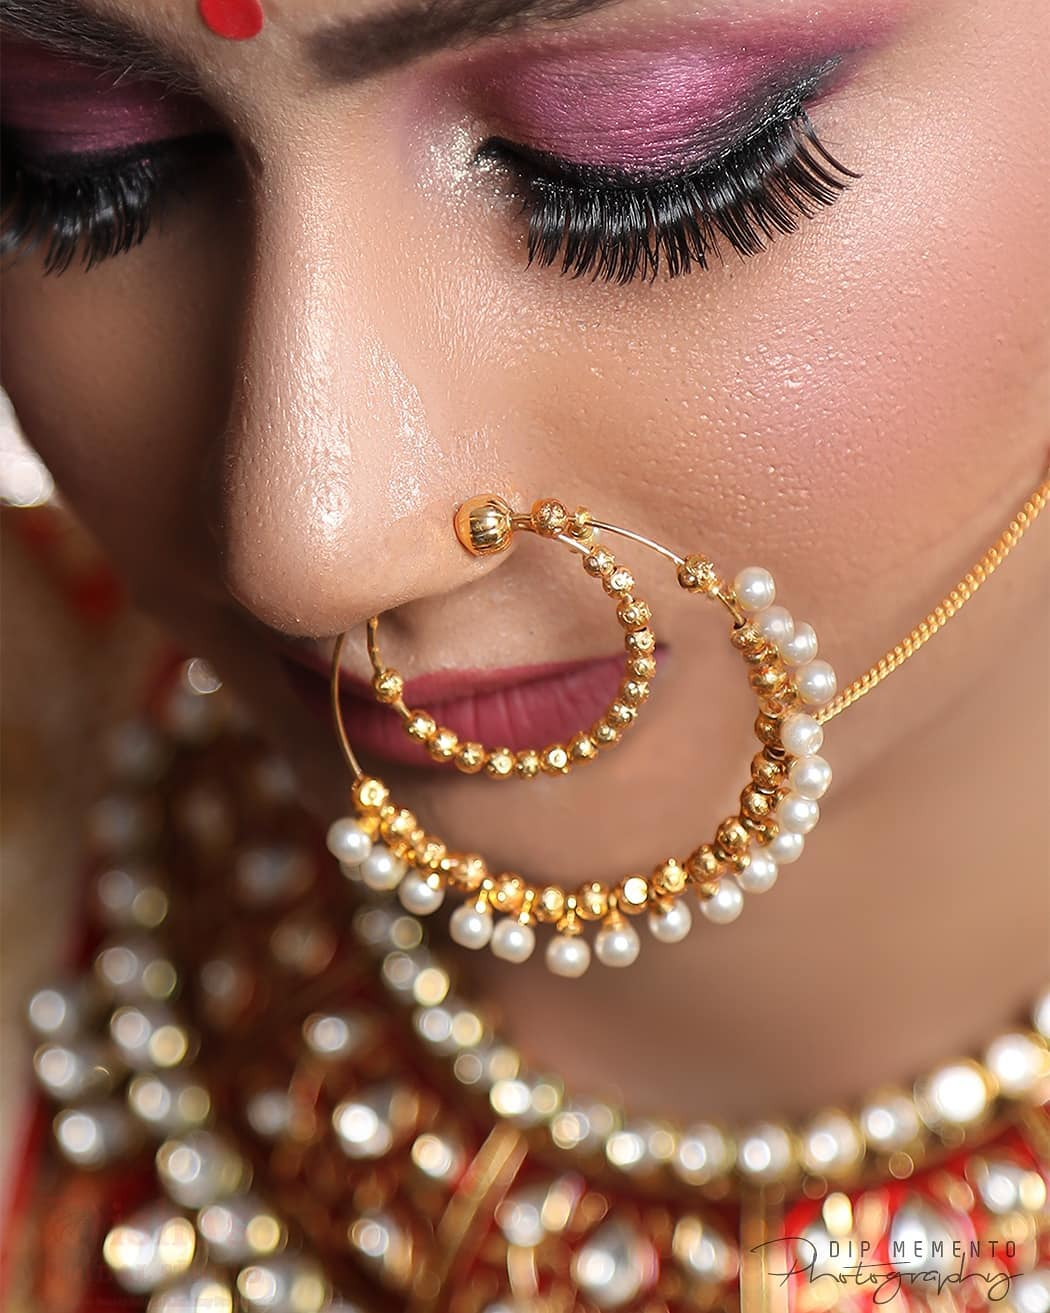 Makeup is an art, beauty is a spirit..... . . ▪︎ captured by @dip_memento_photography ▪︎ Bridal Makeup by @dishabeautysaloonacademynikol ▪︎ InFrame Binita ▪︎ outfit  @sons_boutique5 . . . #brides #sisterbrides #bridetobe #coolbrides #bigfatindianwedding #bridemakeup #indianwedding #photography #weddings #indianwedding #dipmementophotography #9924227745 #loveformakeup #makeuplove #makeupartist #makeup #ahmedabad #candidportraits #indianbride #indianfashionblogger #sisterstogether #sisterfriends #brides #funbrides • @wedzo.in @indianstreetfashion @weddingz.in @indian_wedding_bliss @dulhaanddulhan @thebridesofindia @indianweddings @weddingdream @indianweddingbuzz @shaadisaga @zo_wed @desiclassybrides @weddingwireindia @indiagramwedding @shaadisaga @indian__wedding @thebridesofindia @weddingsutra @wedmegood @bridalaffairind @theweddingbrigade @weddingplz @weddingfables @indian_wedding_inspiration @eventilaindia @_punjabi_weddings